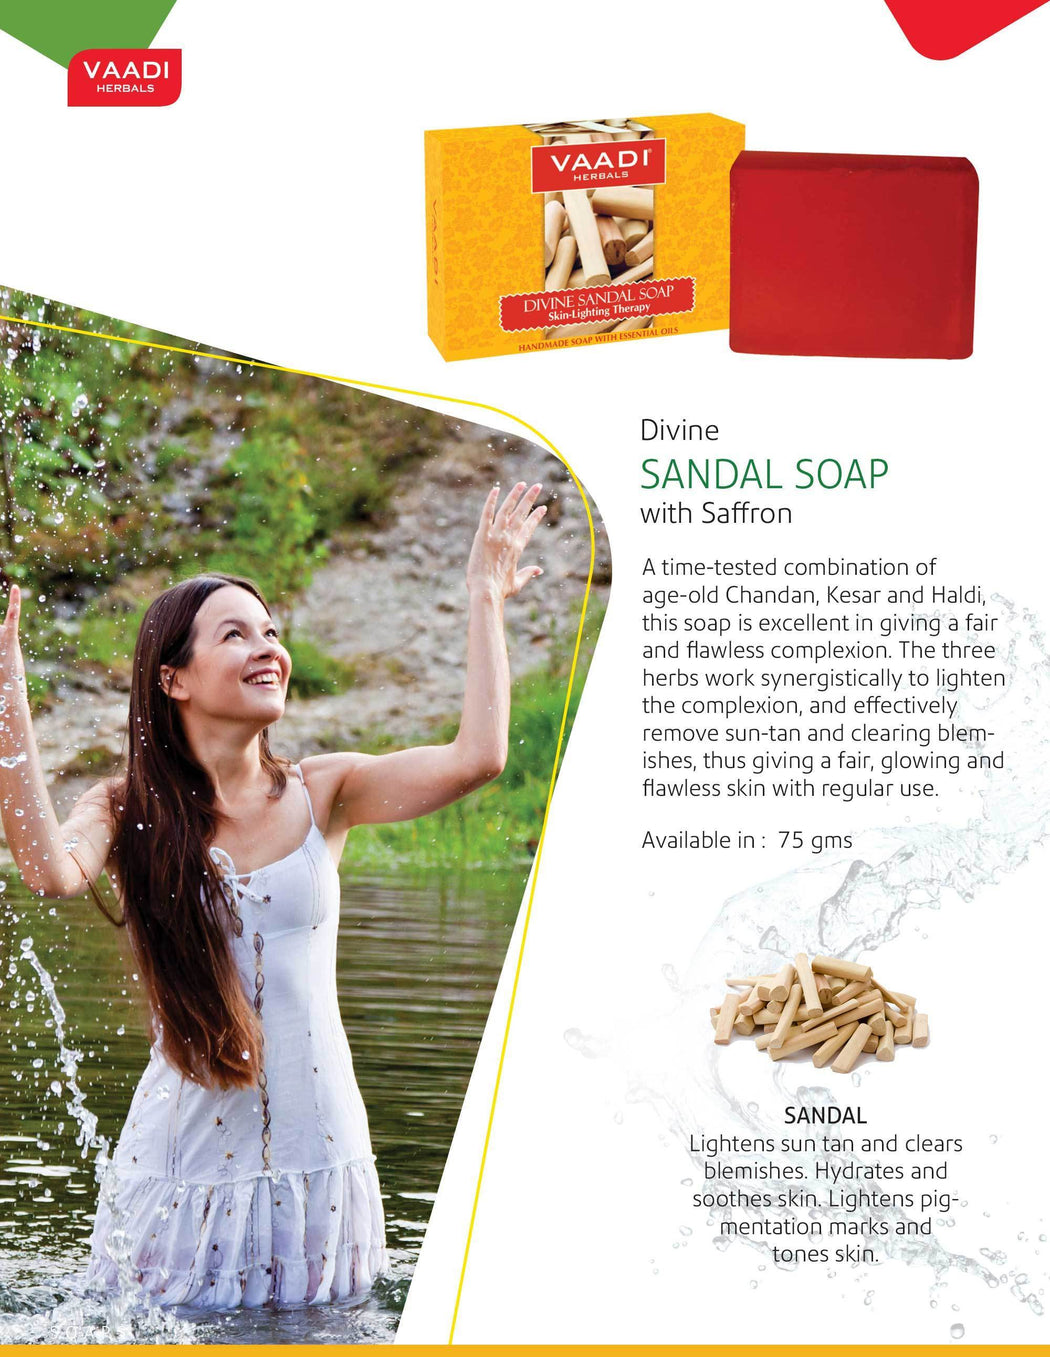 Organic Divine Sandal Soap with Saffron & Turmeric - Skin Lightening Therapy - Lightens Tan & Blemishes (6 x 75 gms / 2.7 oz)